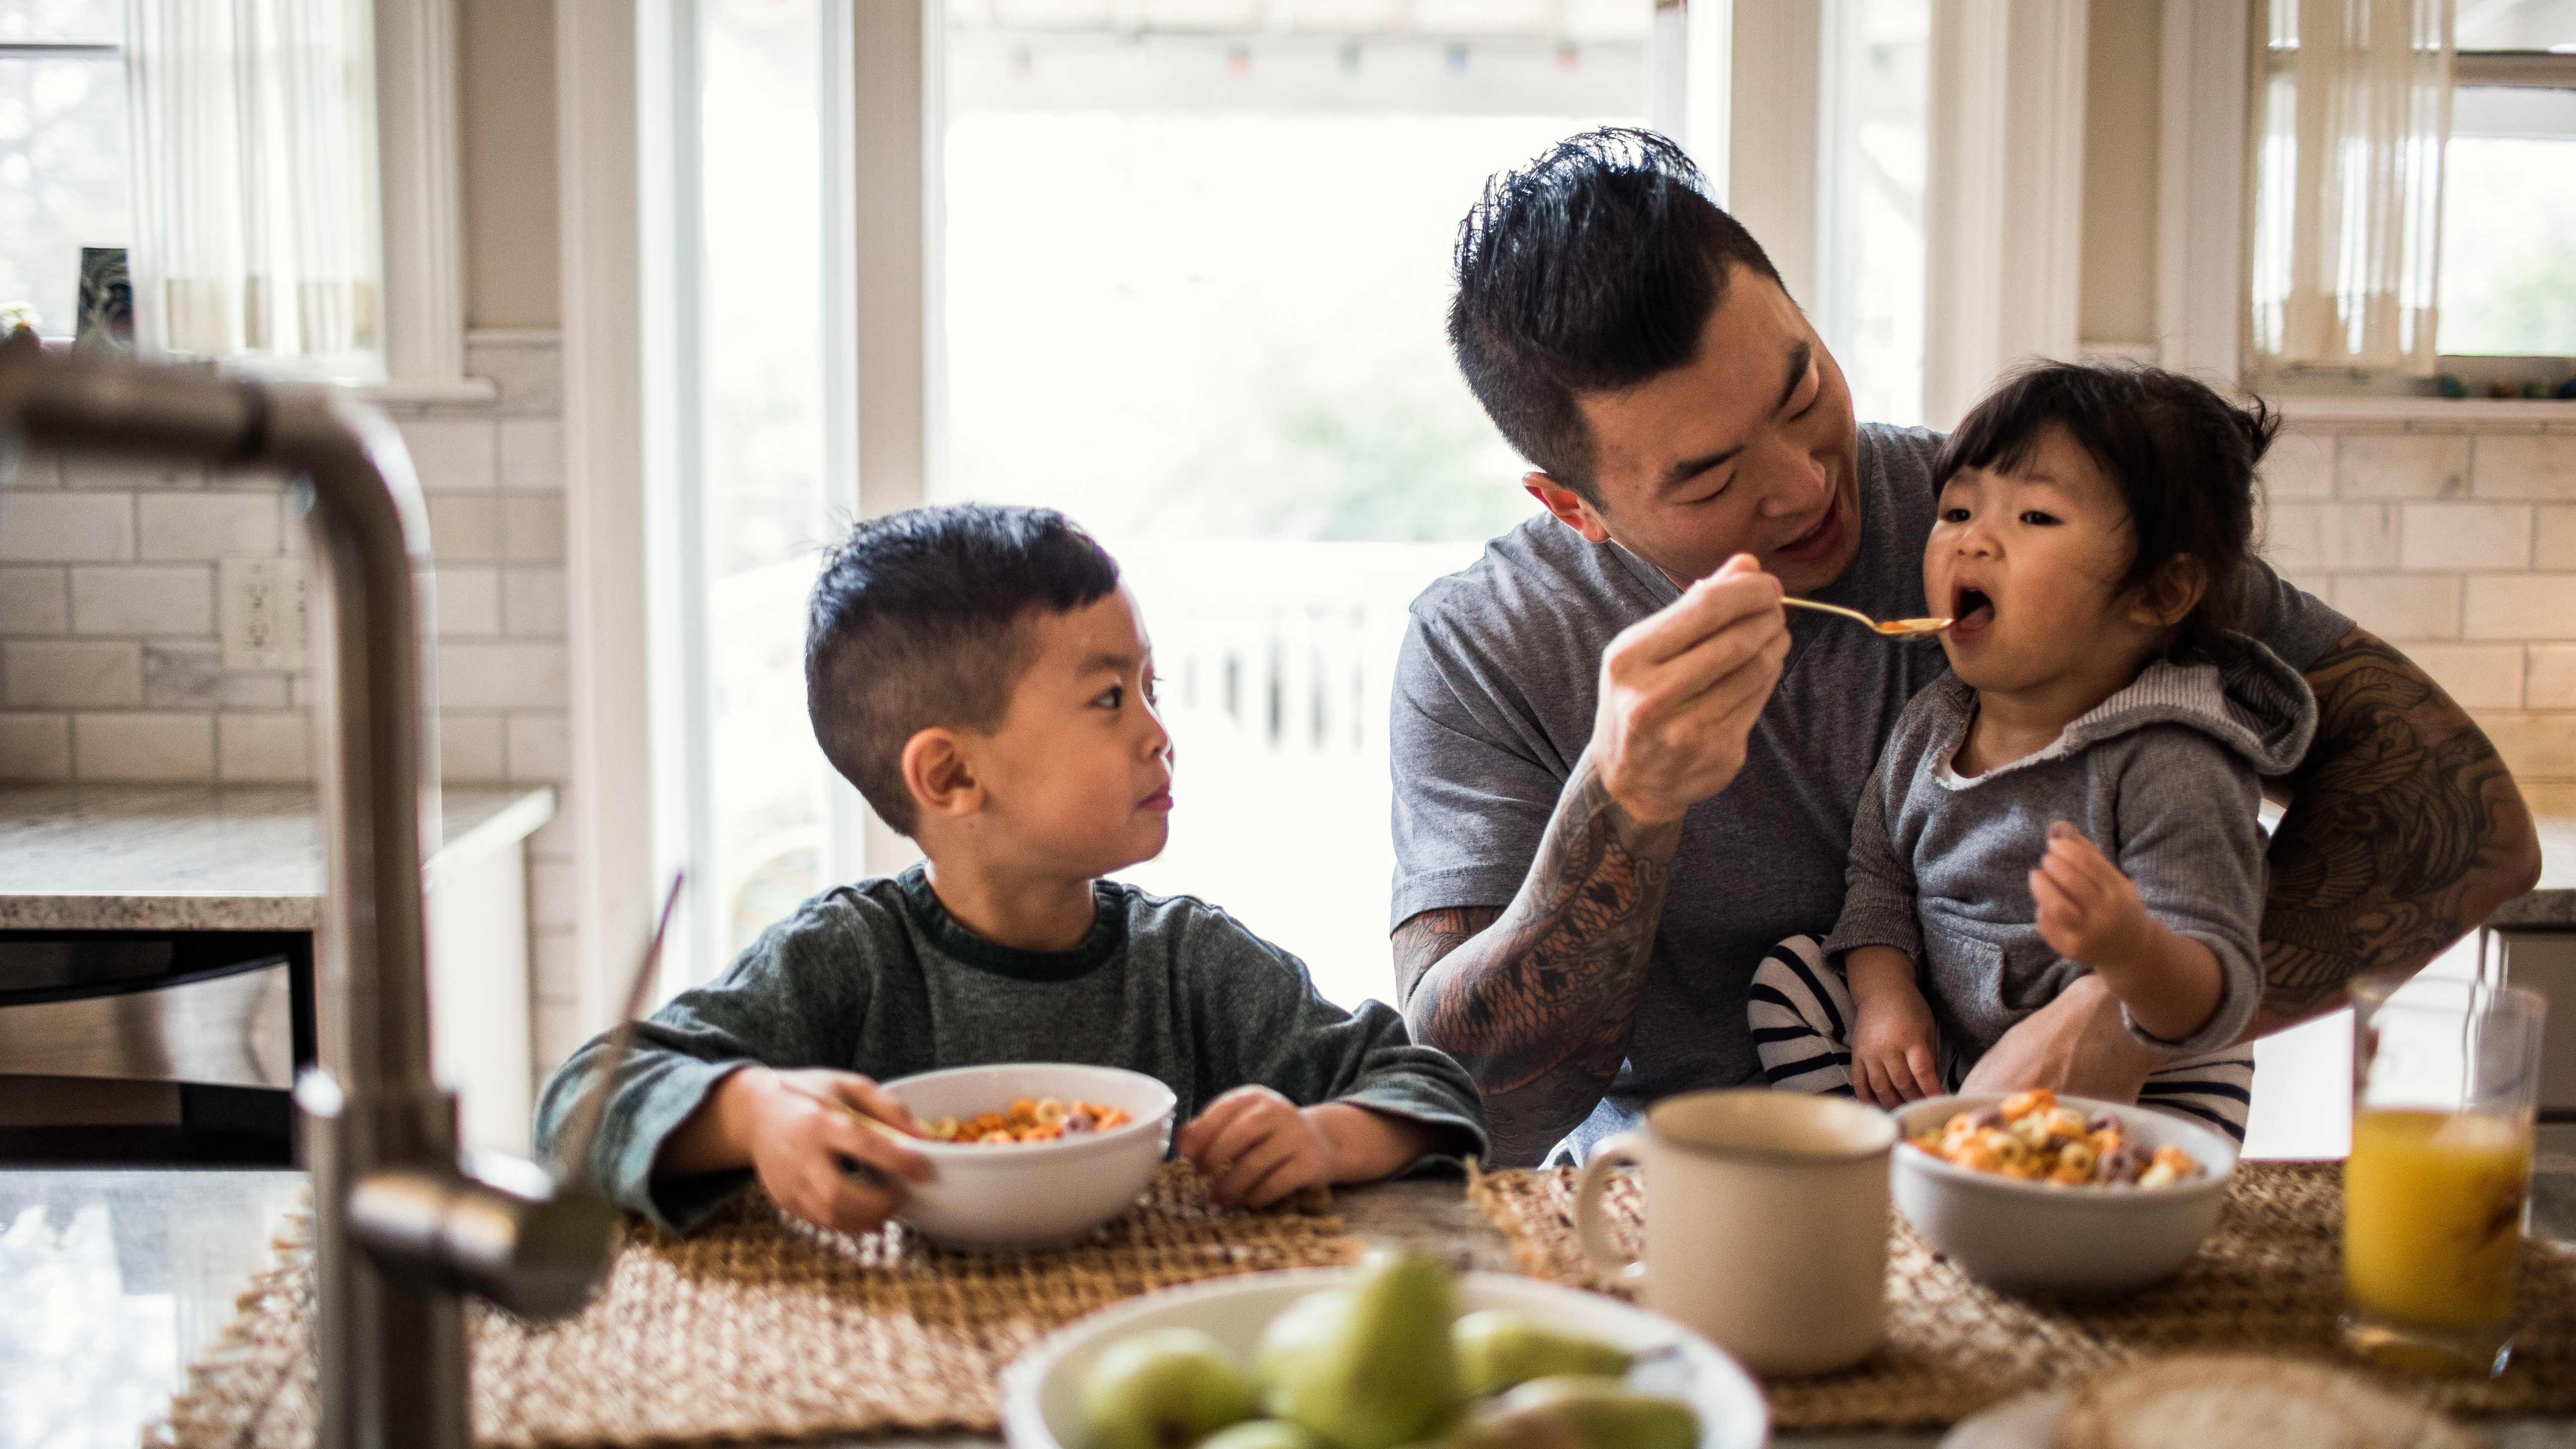 A father feeding his children at the table in their home.